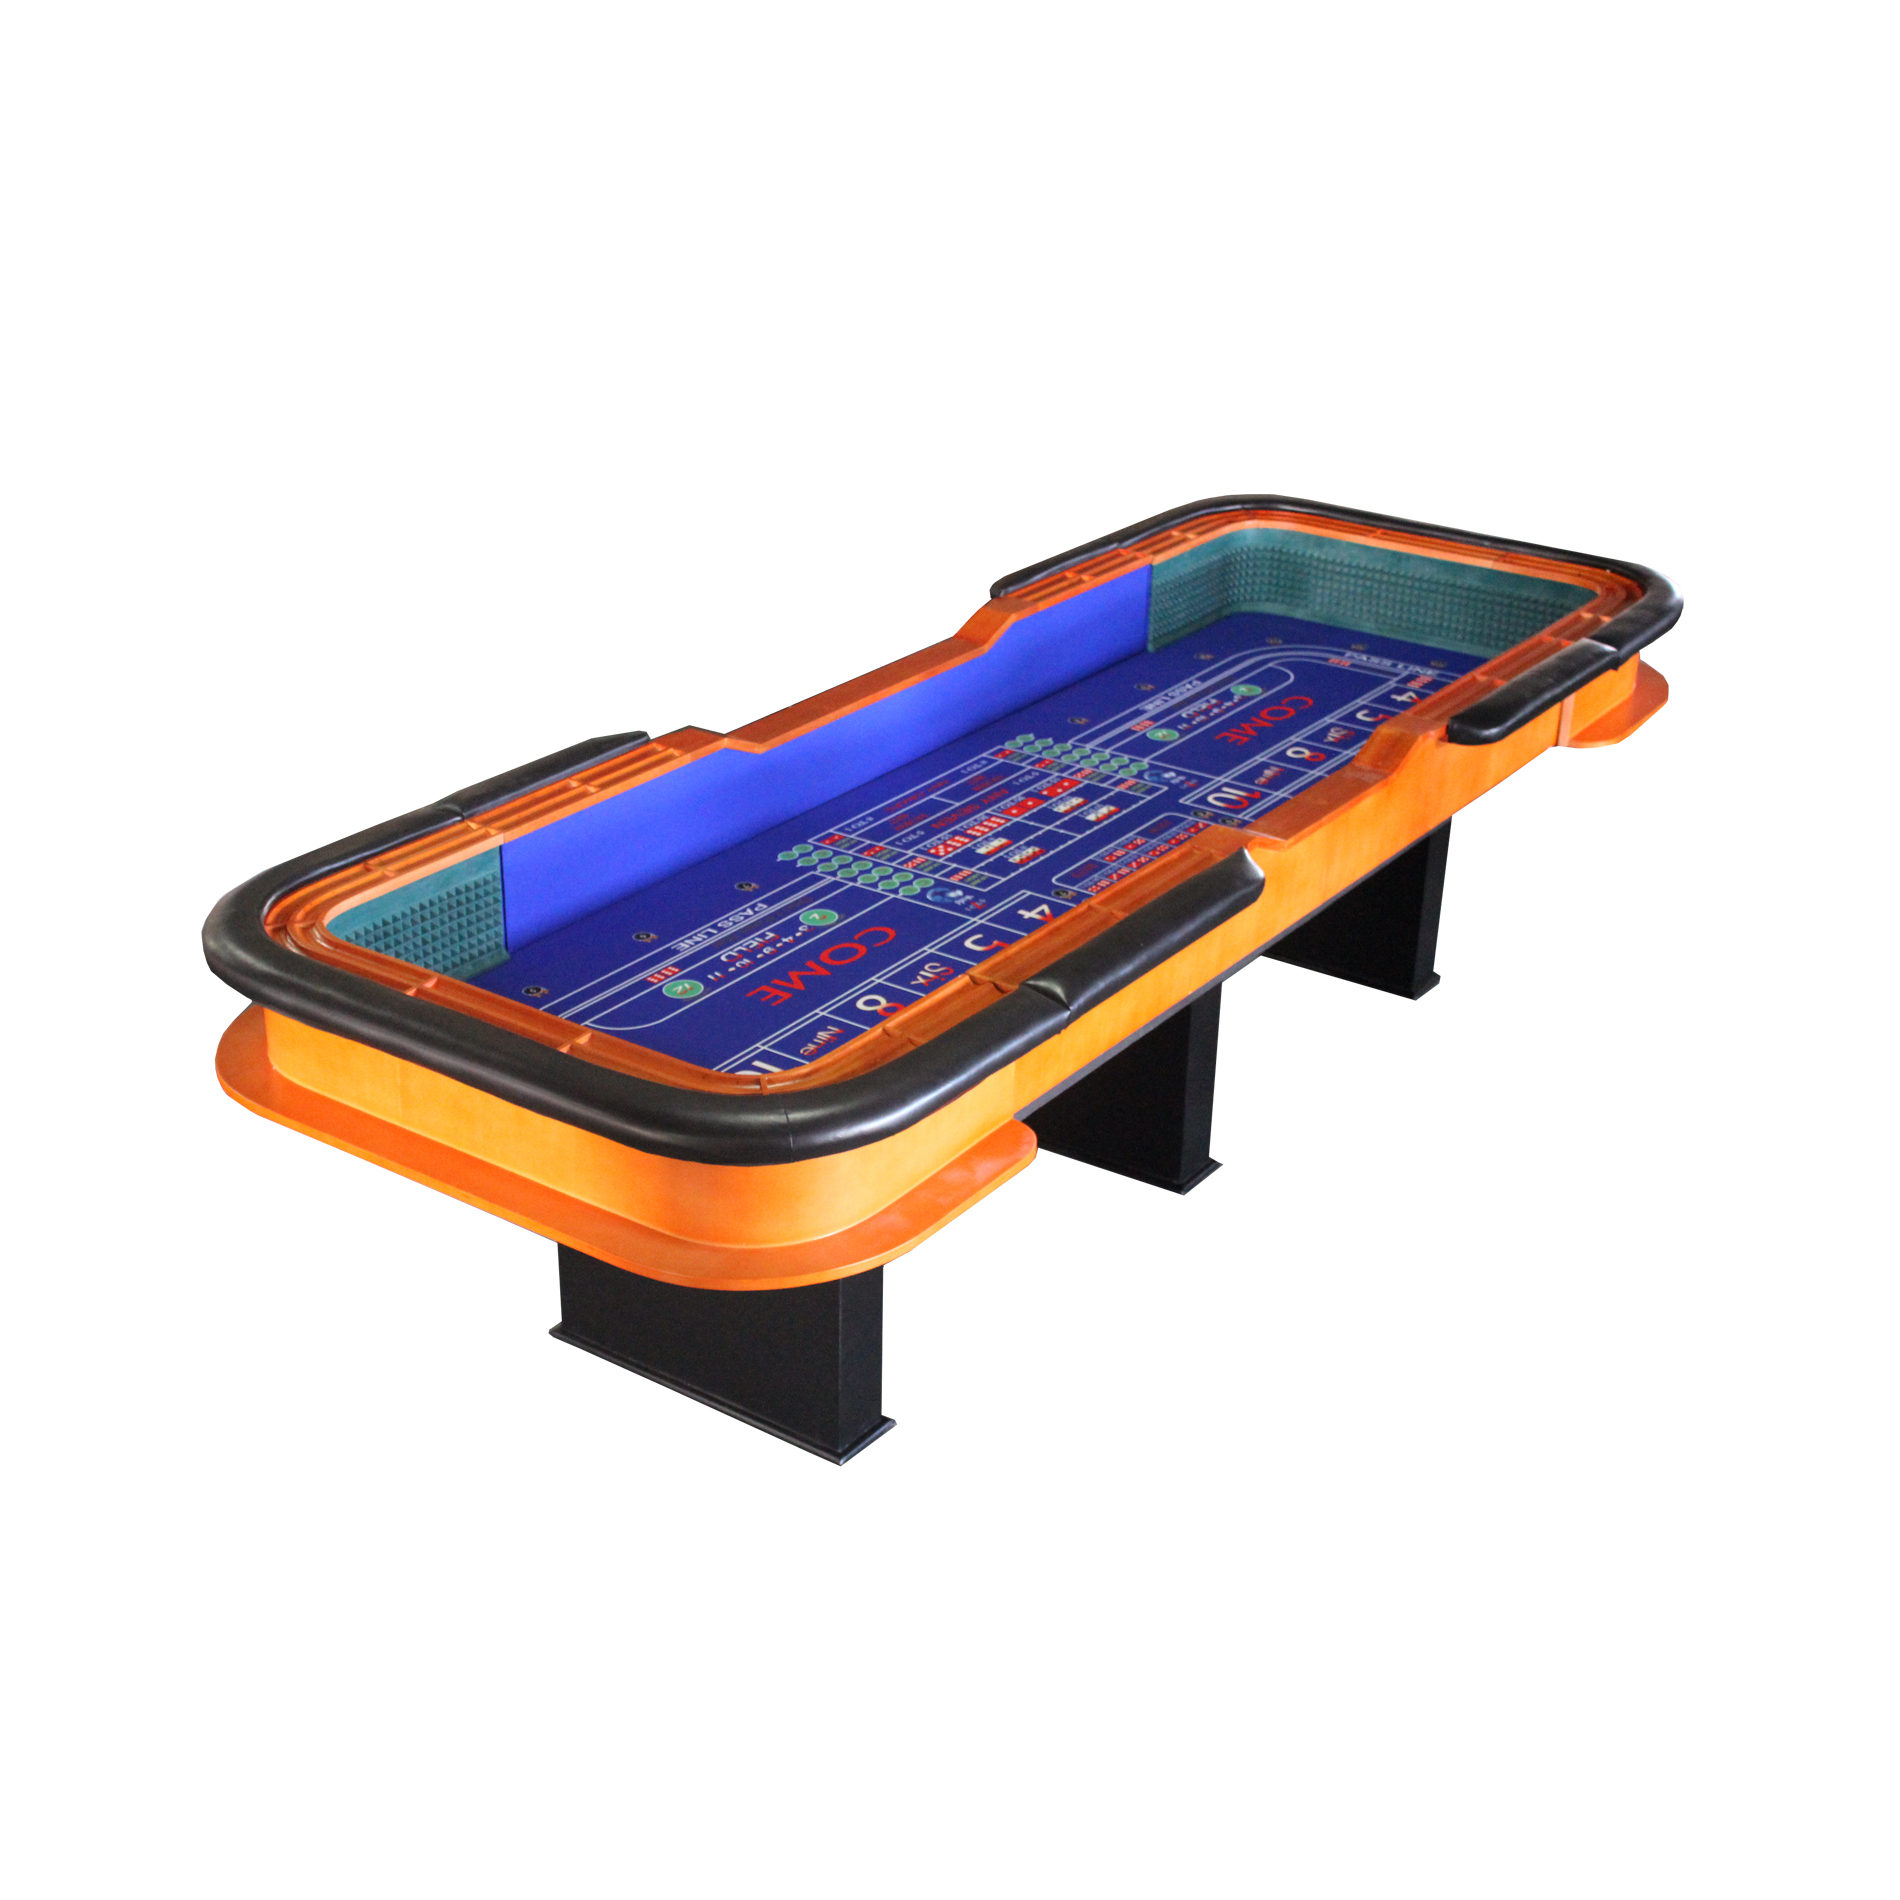 12 Foot Deluxe Craps Dice Table with Diamond Rubber Casino Game Table